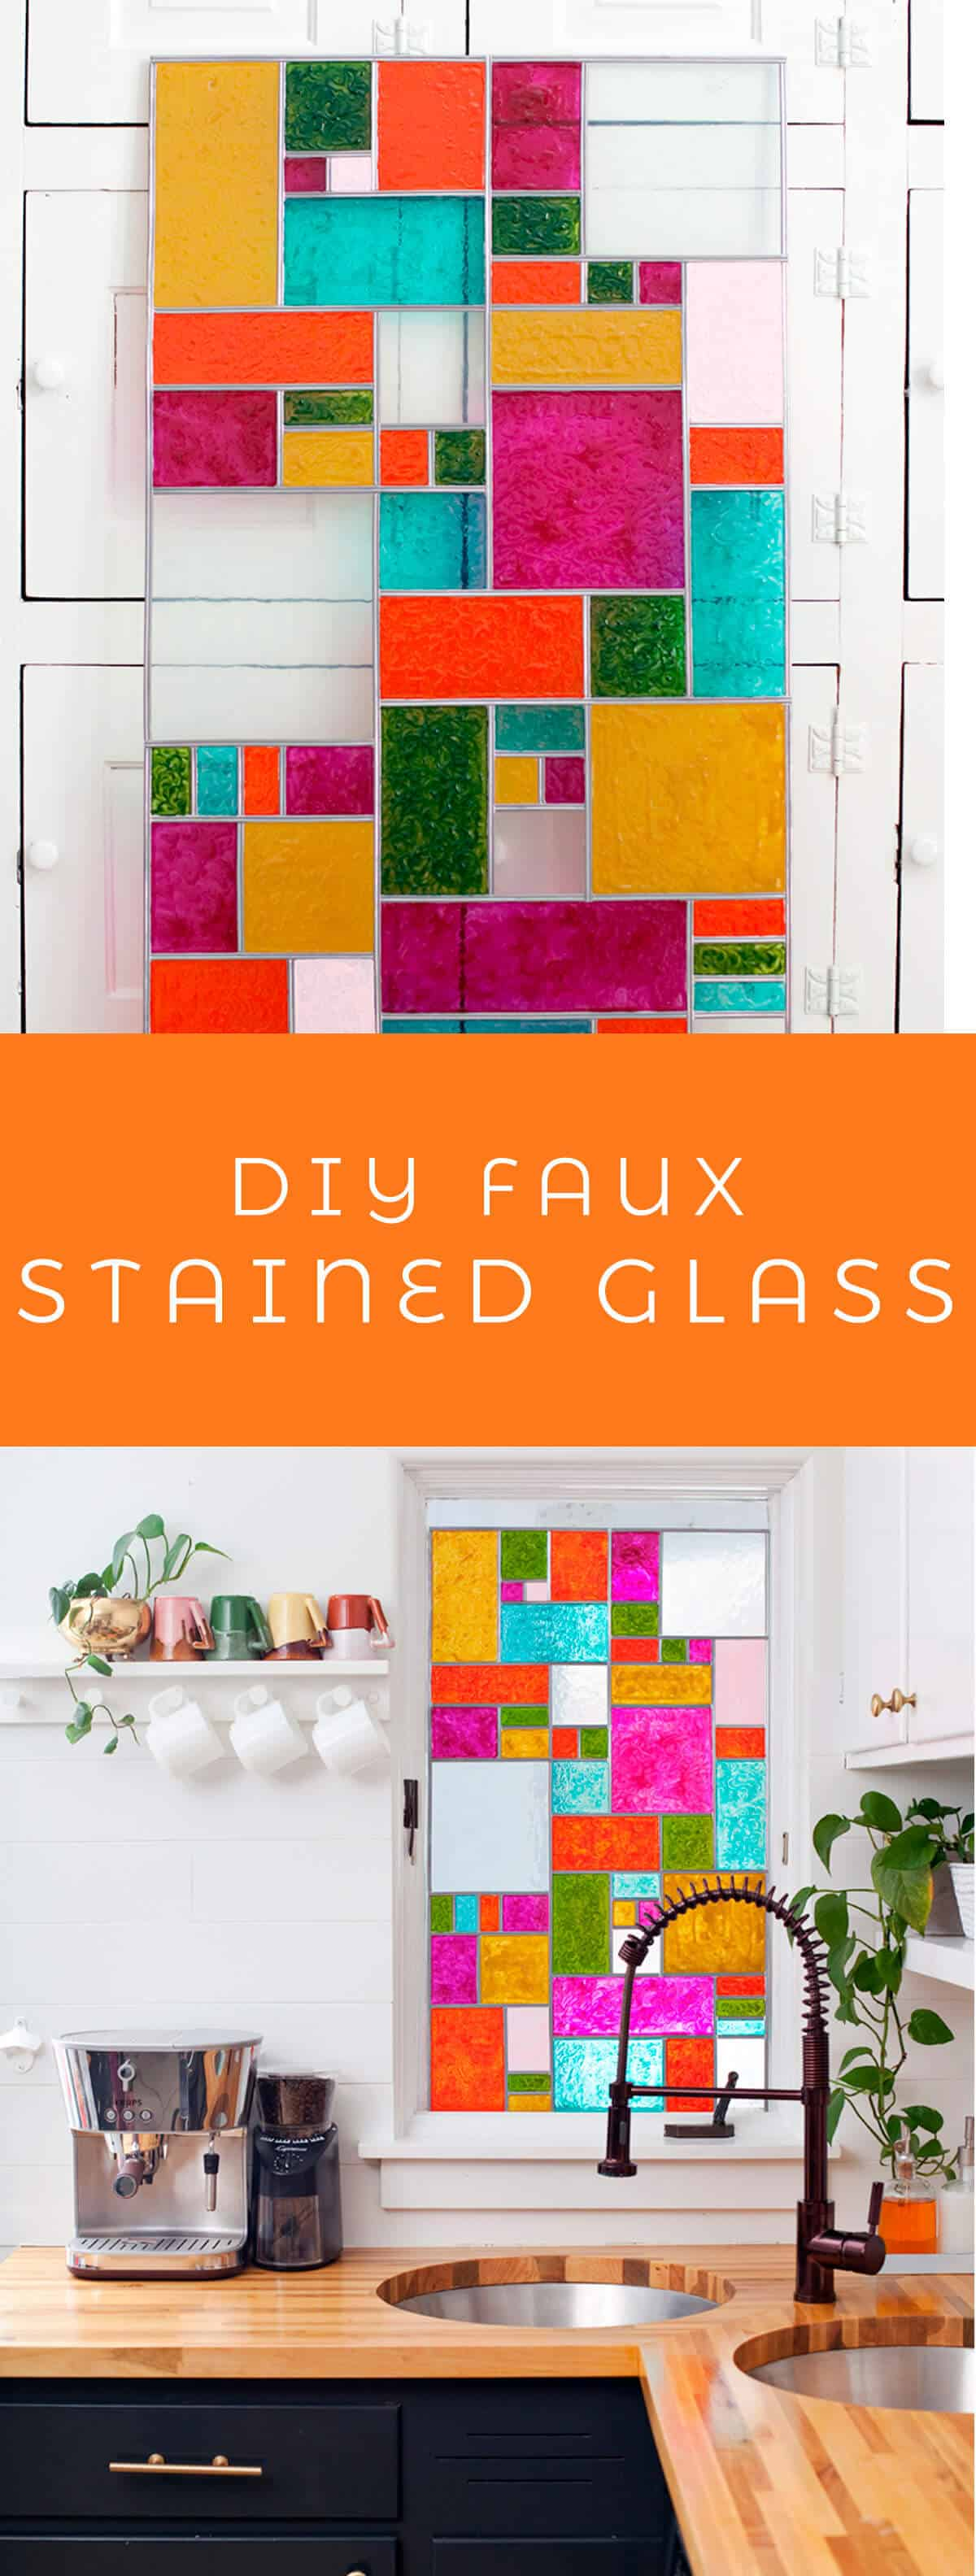 Diy Stained Glass Window.Diy Faux Stained Glass A Beautiful Mess